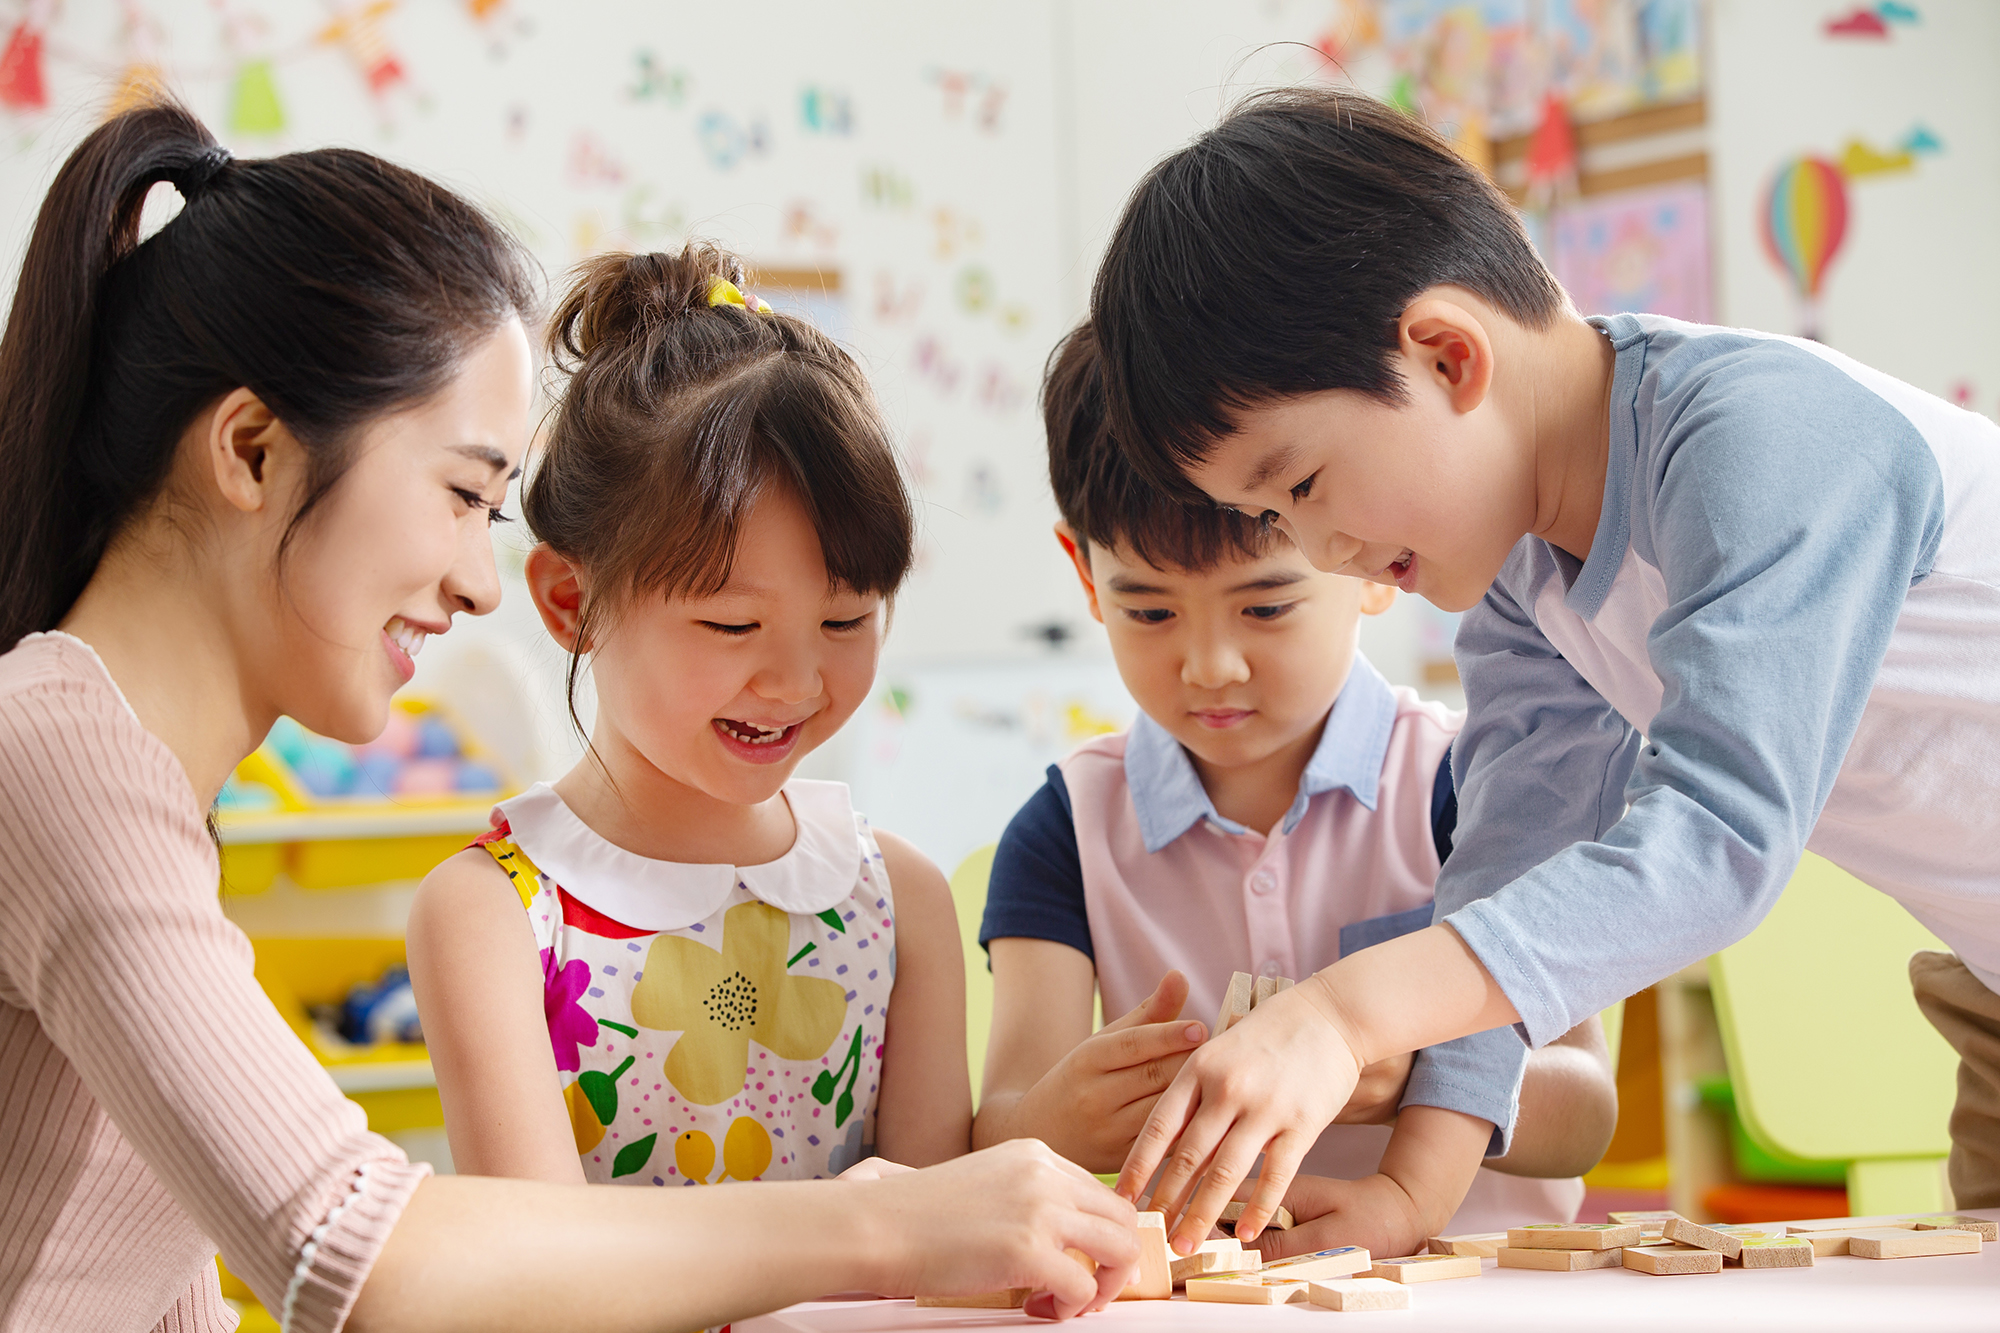 Early Childhood Educators' Well-Being in the Chinese Context